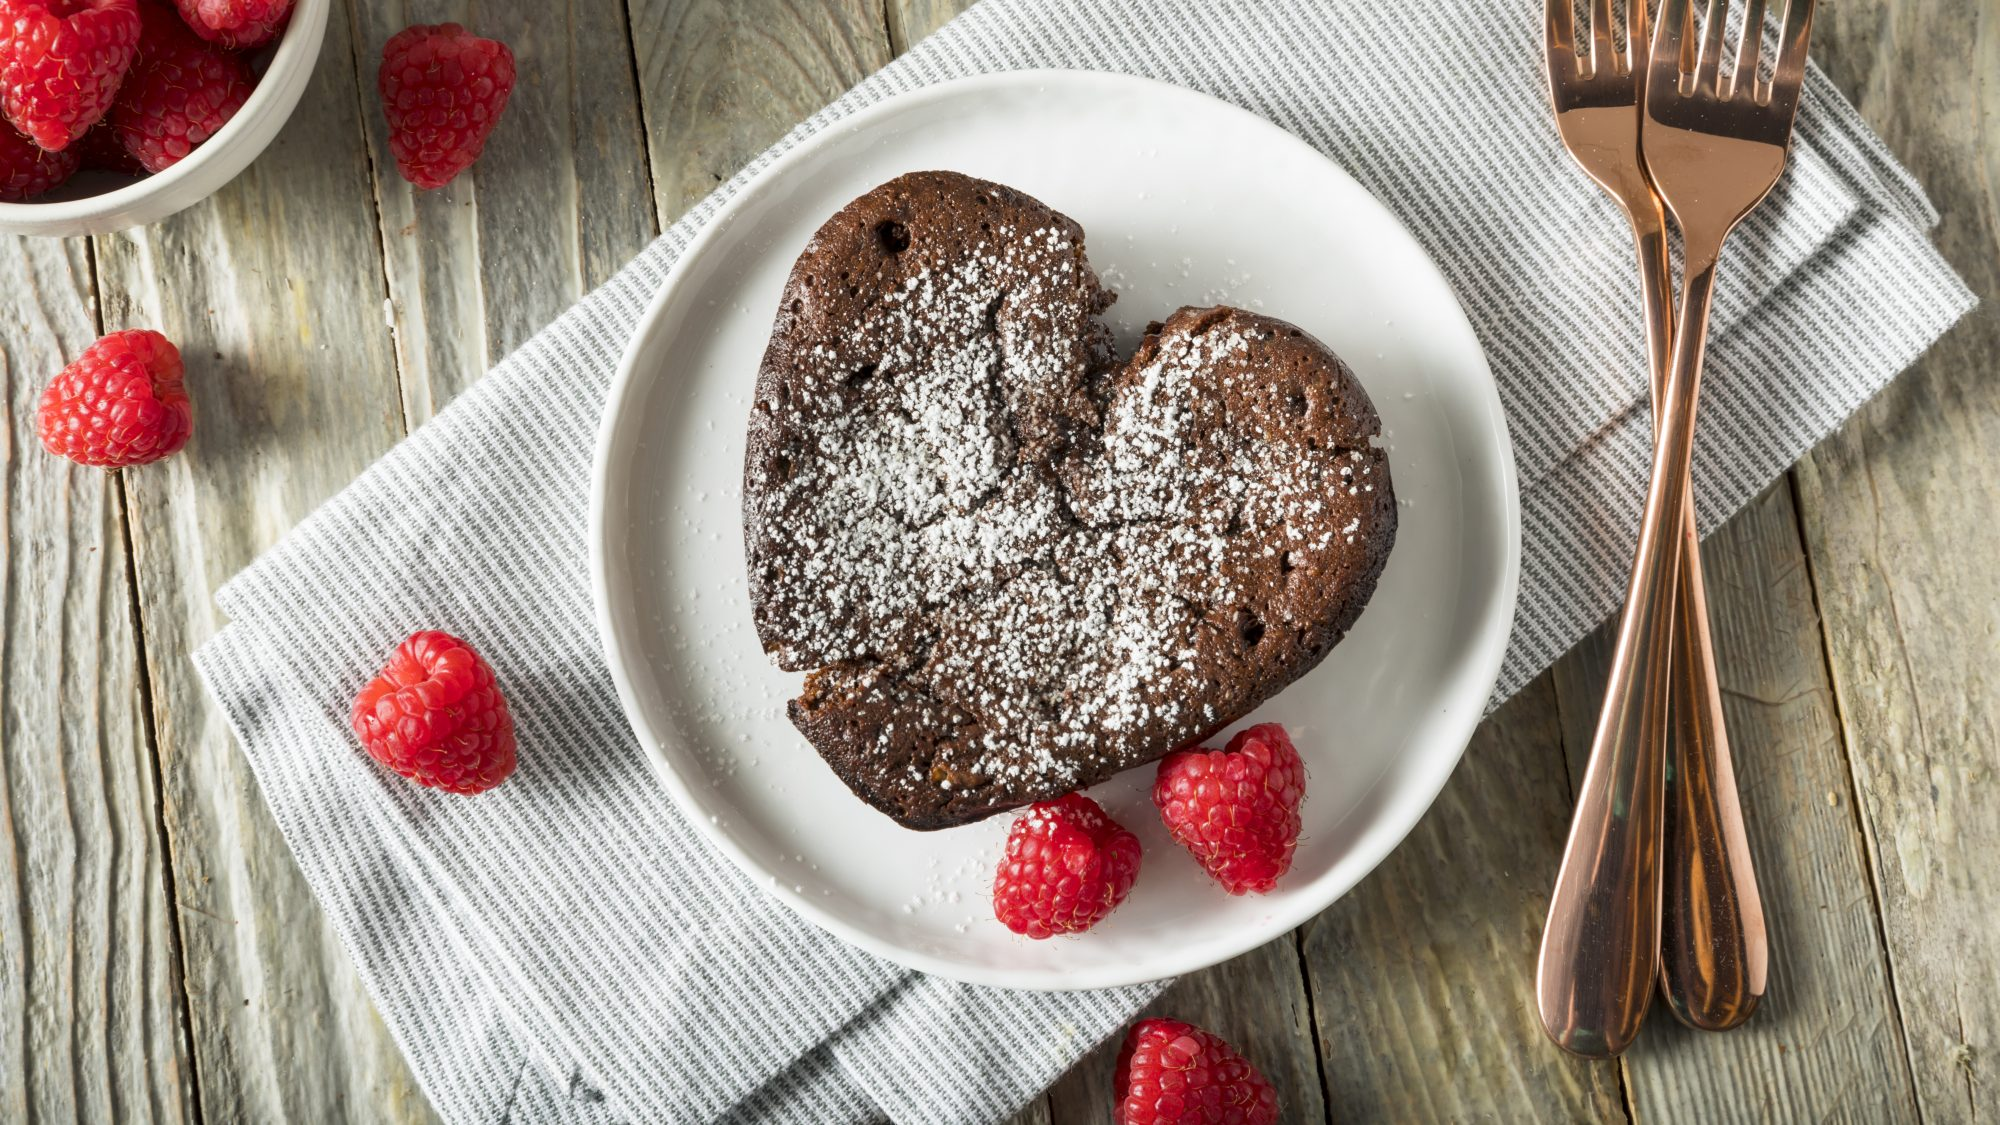 valentines-day-desserts: chocolate souffle with raspberries